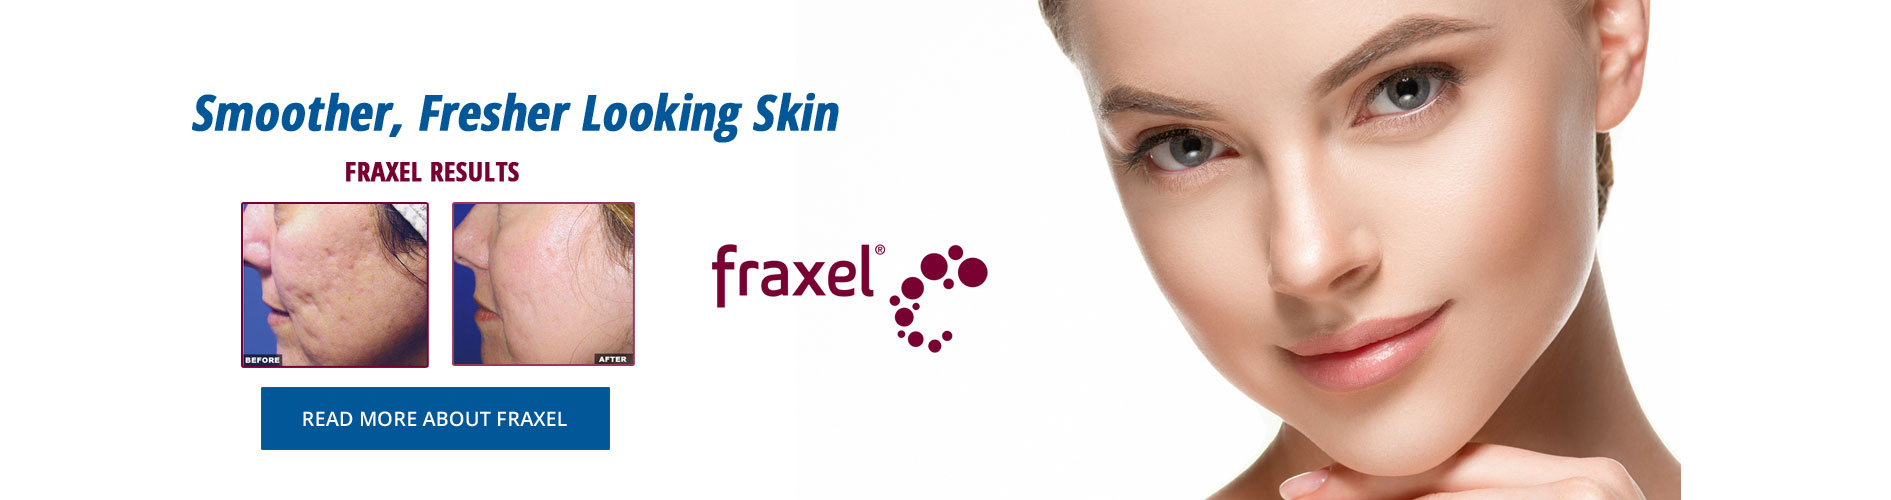 Fraxel Treatment  At Beer Dermatology West Palm Beach